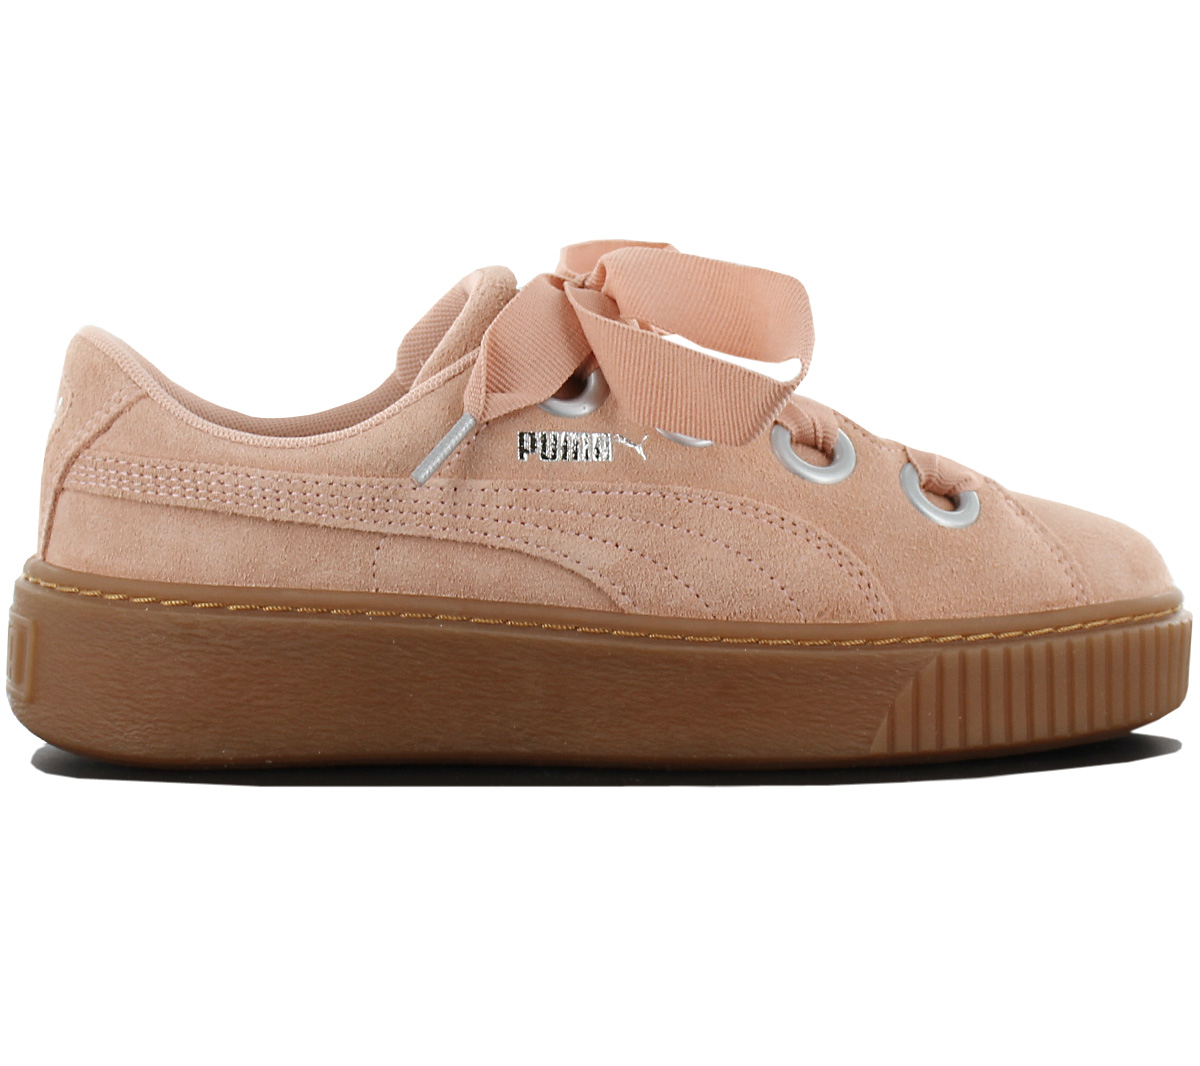 c0d9882a08af98 Puma Platform Kiss Suede Women s Sneakers Leather Shoes Sneakers ...